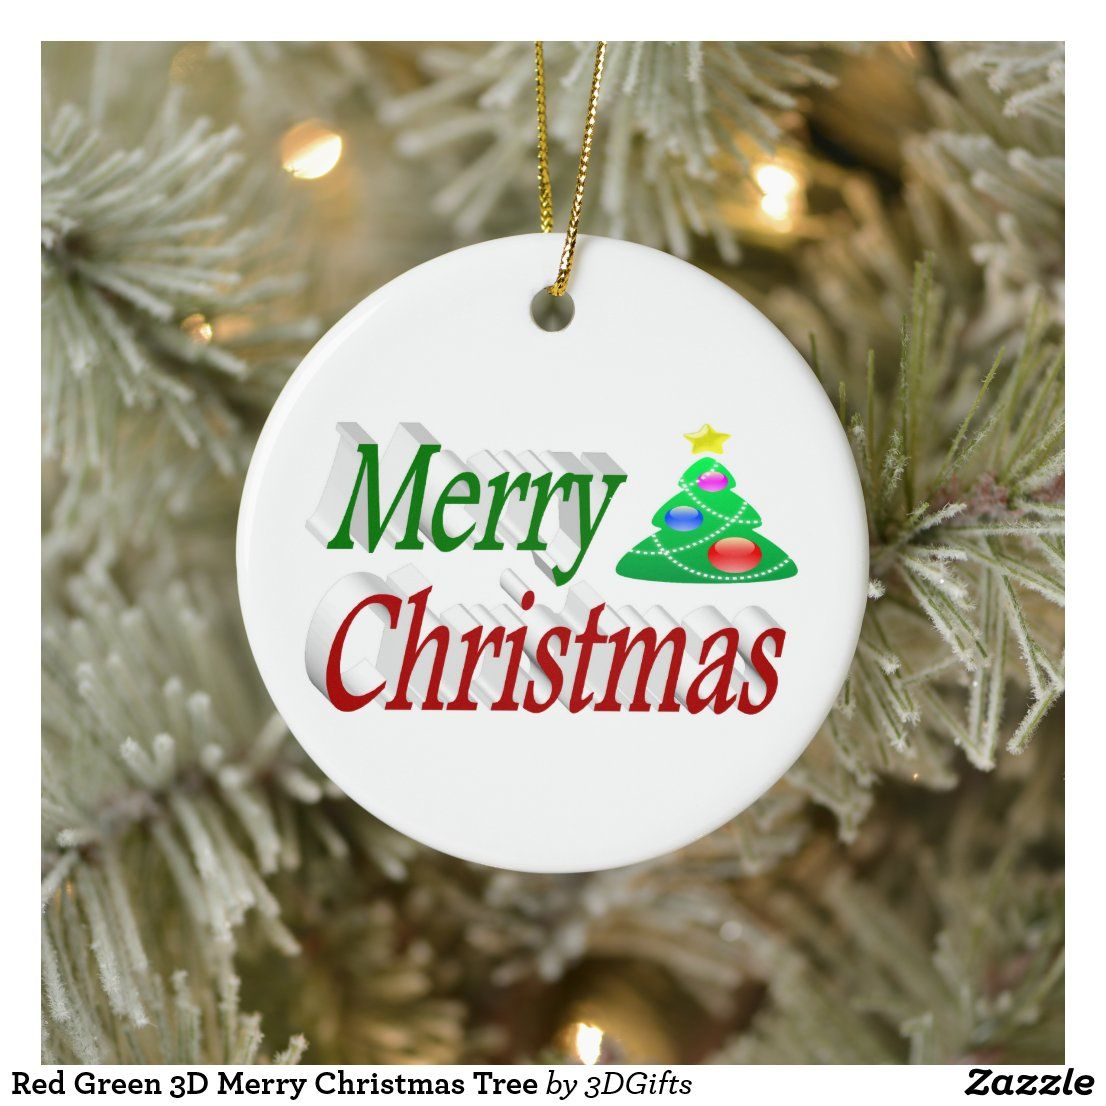 Merry Christmas 2020 3d Ornament Red Green 3D Merry Christmas Tree Ceramic Ornament | Zazzle.in